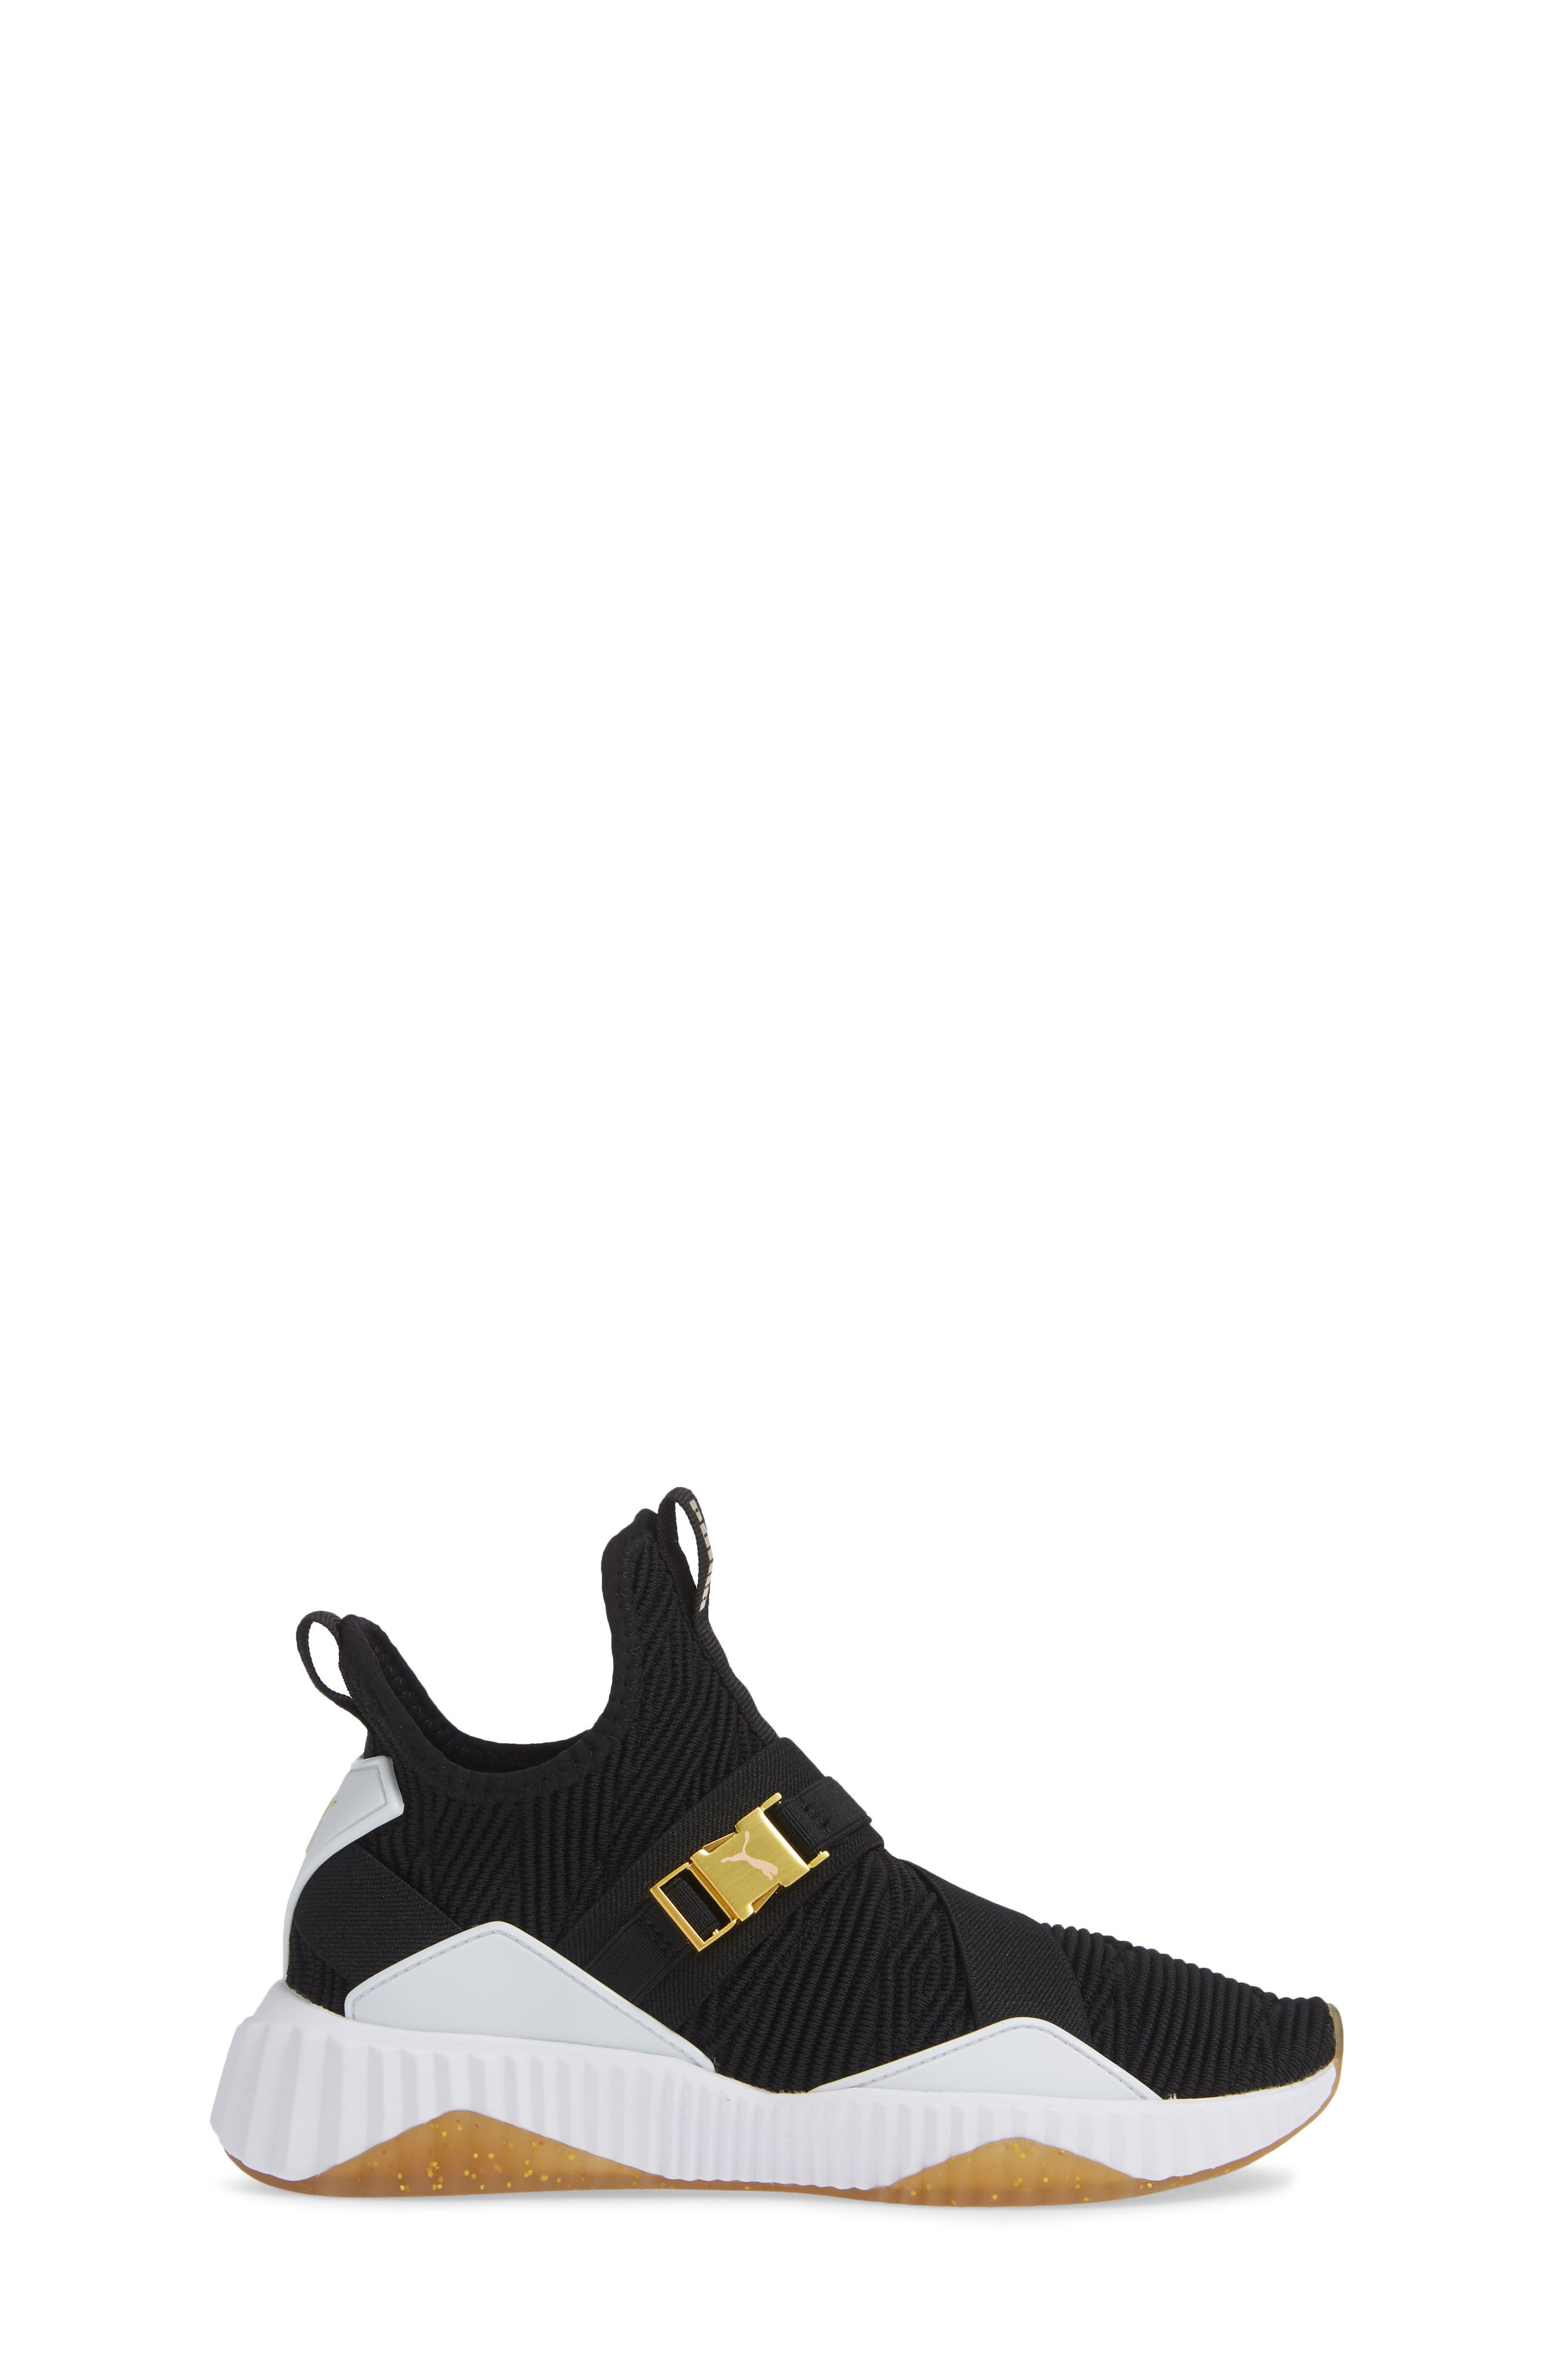 Defy Mid Varsity Sneaker,                             Alternate thumbnail 3, color,                             BLACK/ METALLIC GOLD